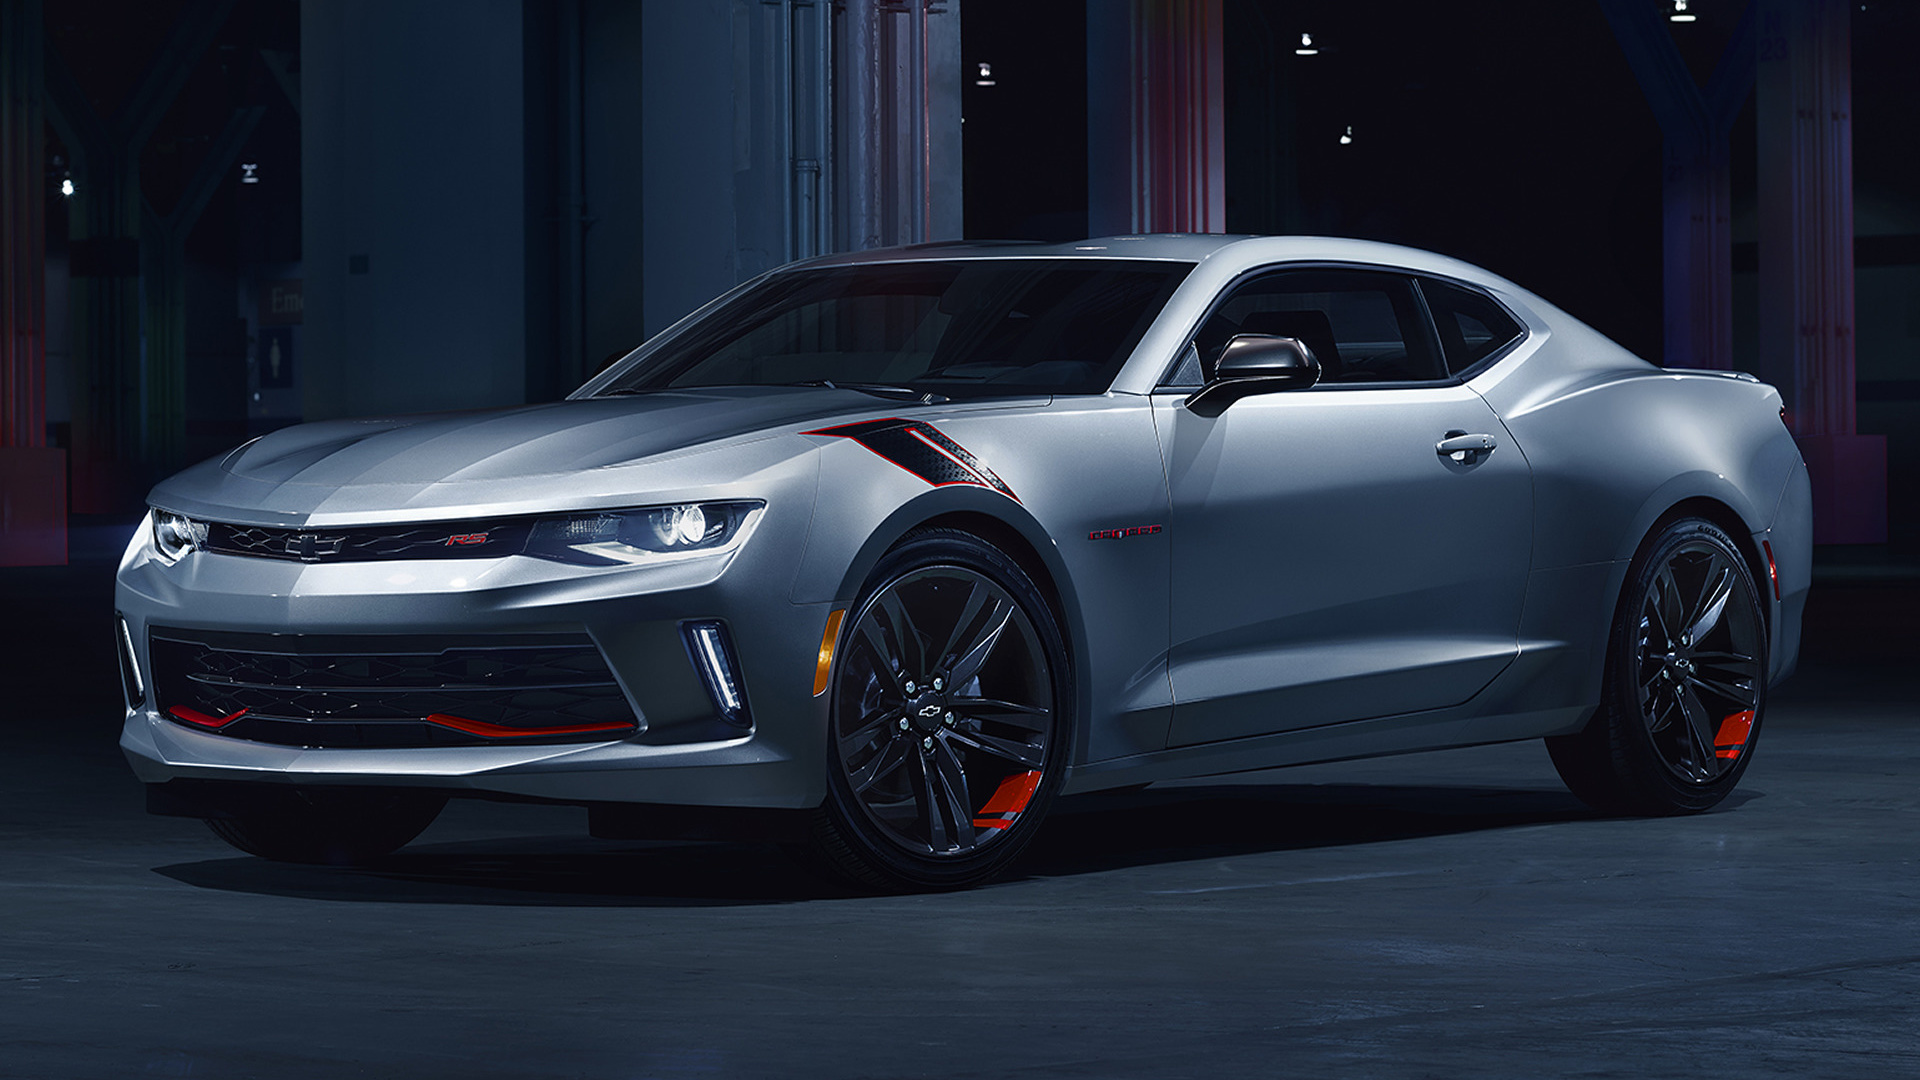 2017 Chevrolet Camaro Rs Hd Wallpaper Background Image